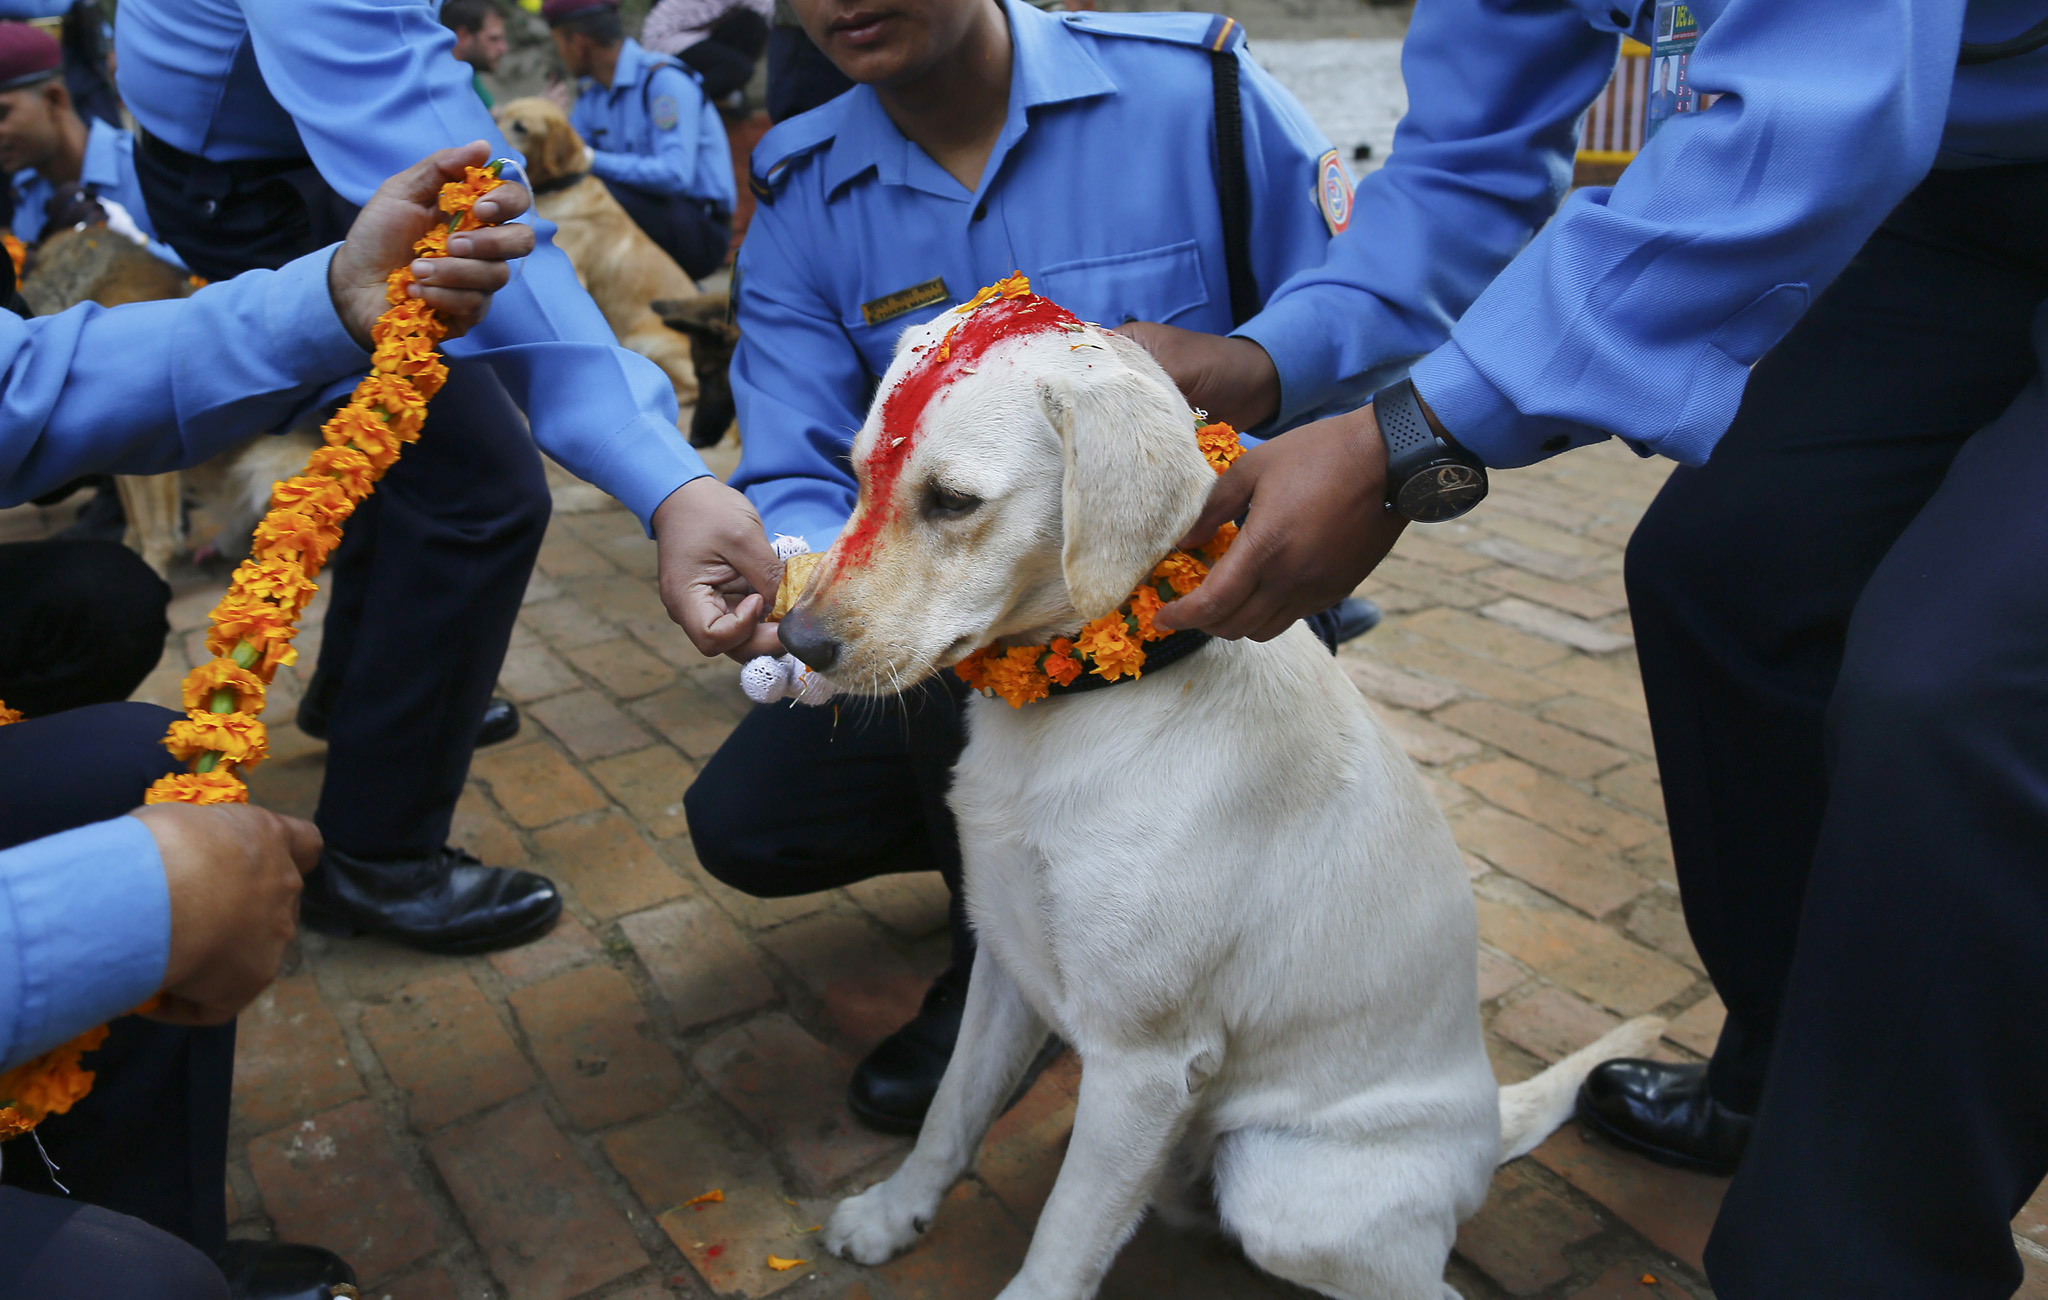 Dog worship day in Nepal...epa05018765 A police officer sprinkles colored powder onto a police dog at Nepal's Central Police Dog Training School during a dog worship day as part of the Diwali festival, also known as Tihar Festival, in Kathmandu, Nepal, 10 November 2015. The Tihar festival is the second major festival for Nepalese Hindus and this year is held from 10 November 2015.  EPA/NARENDRA SHRESTHA